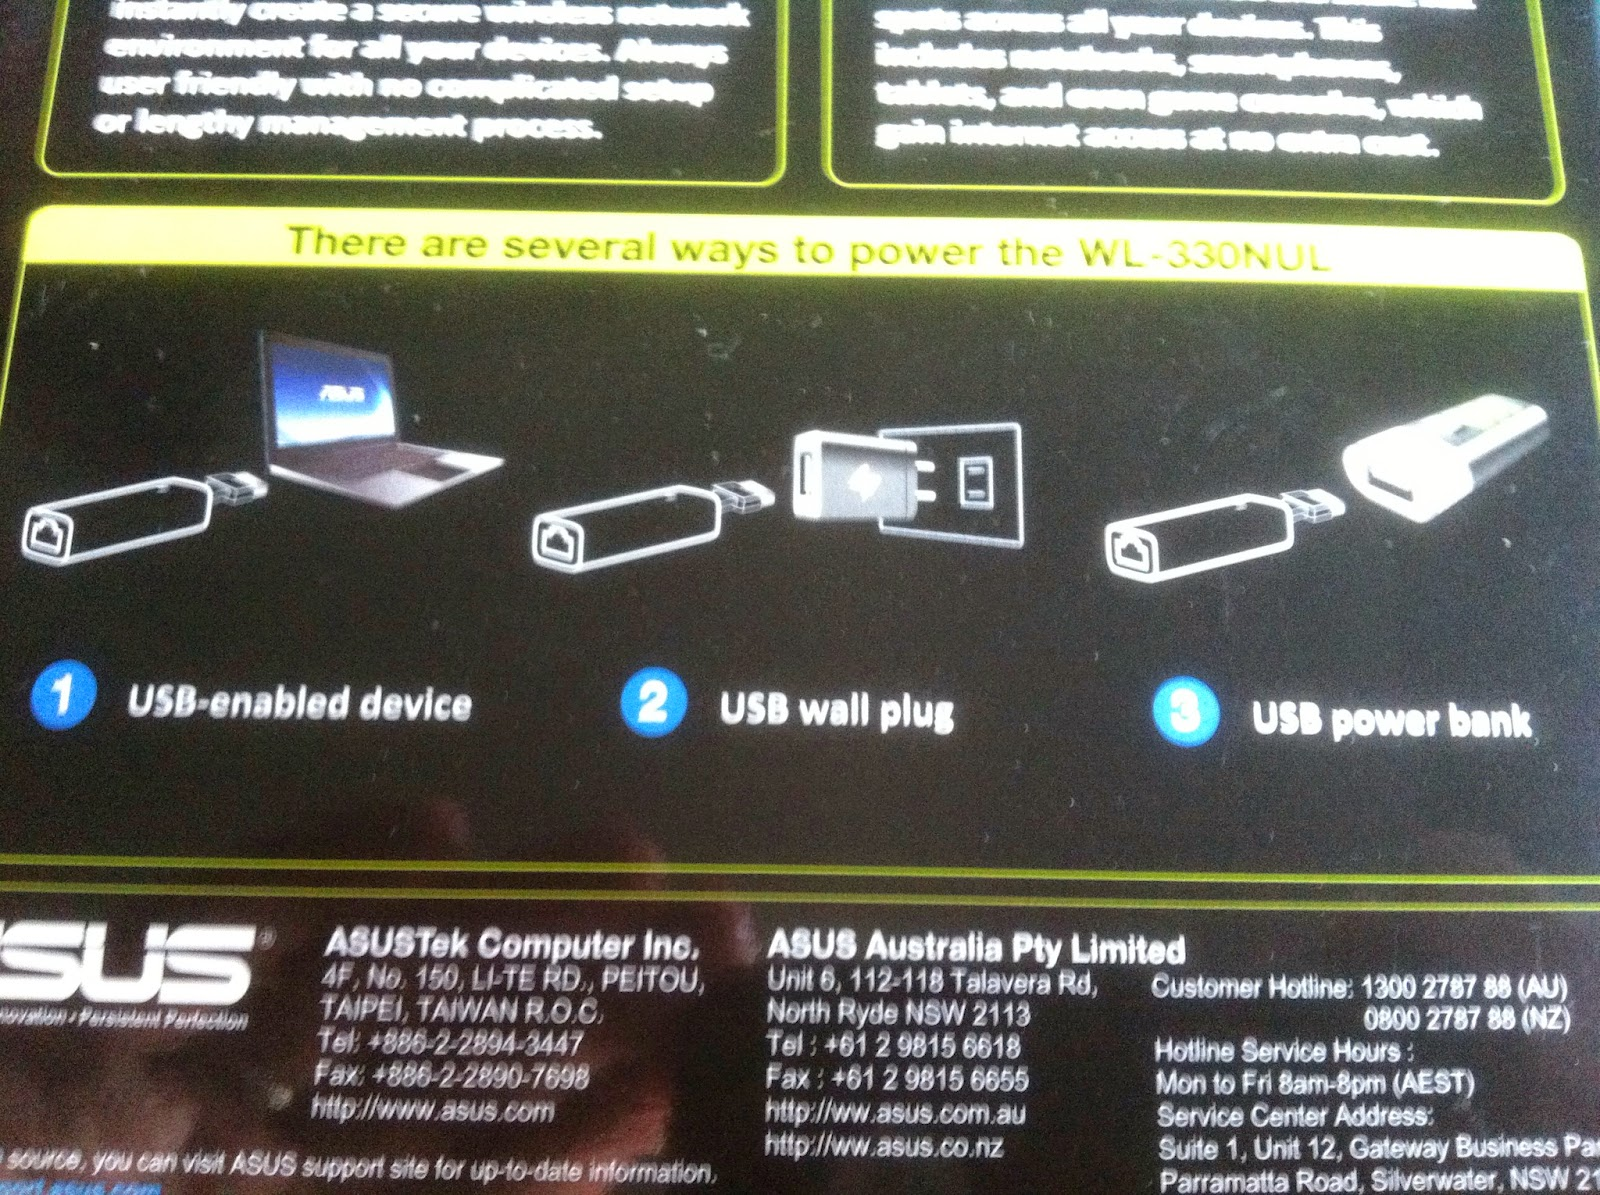 PC Parts and Accessories: Travel Essentials: Asus All-In-One